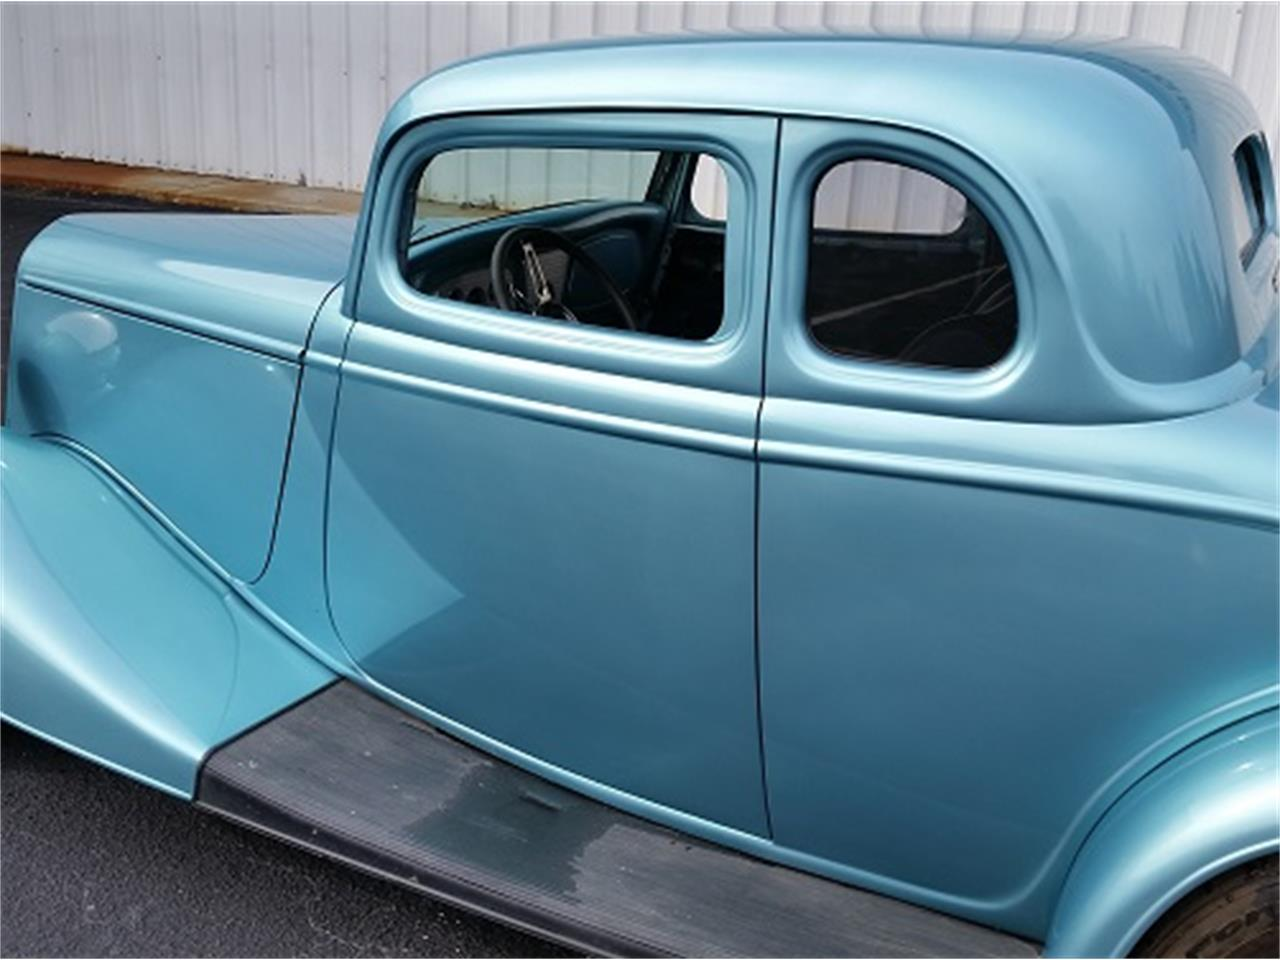 Large Picture of Classic 1934 Ford Coupe - $37,500.00 - KUCX